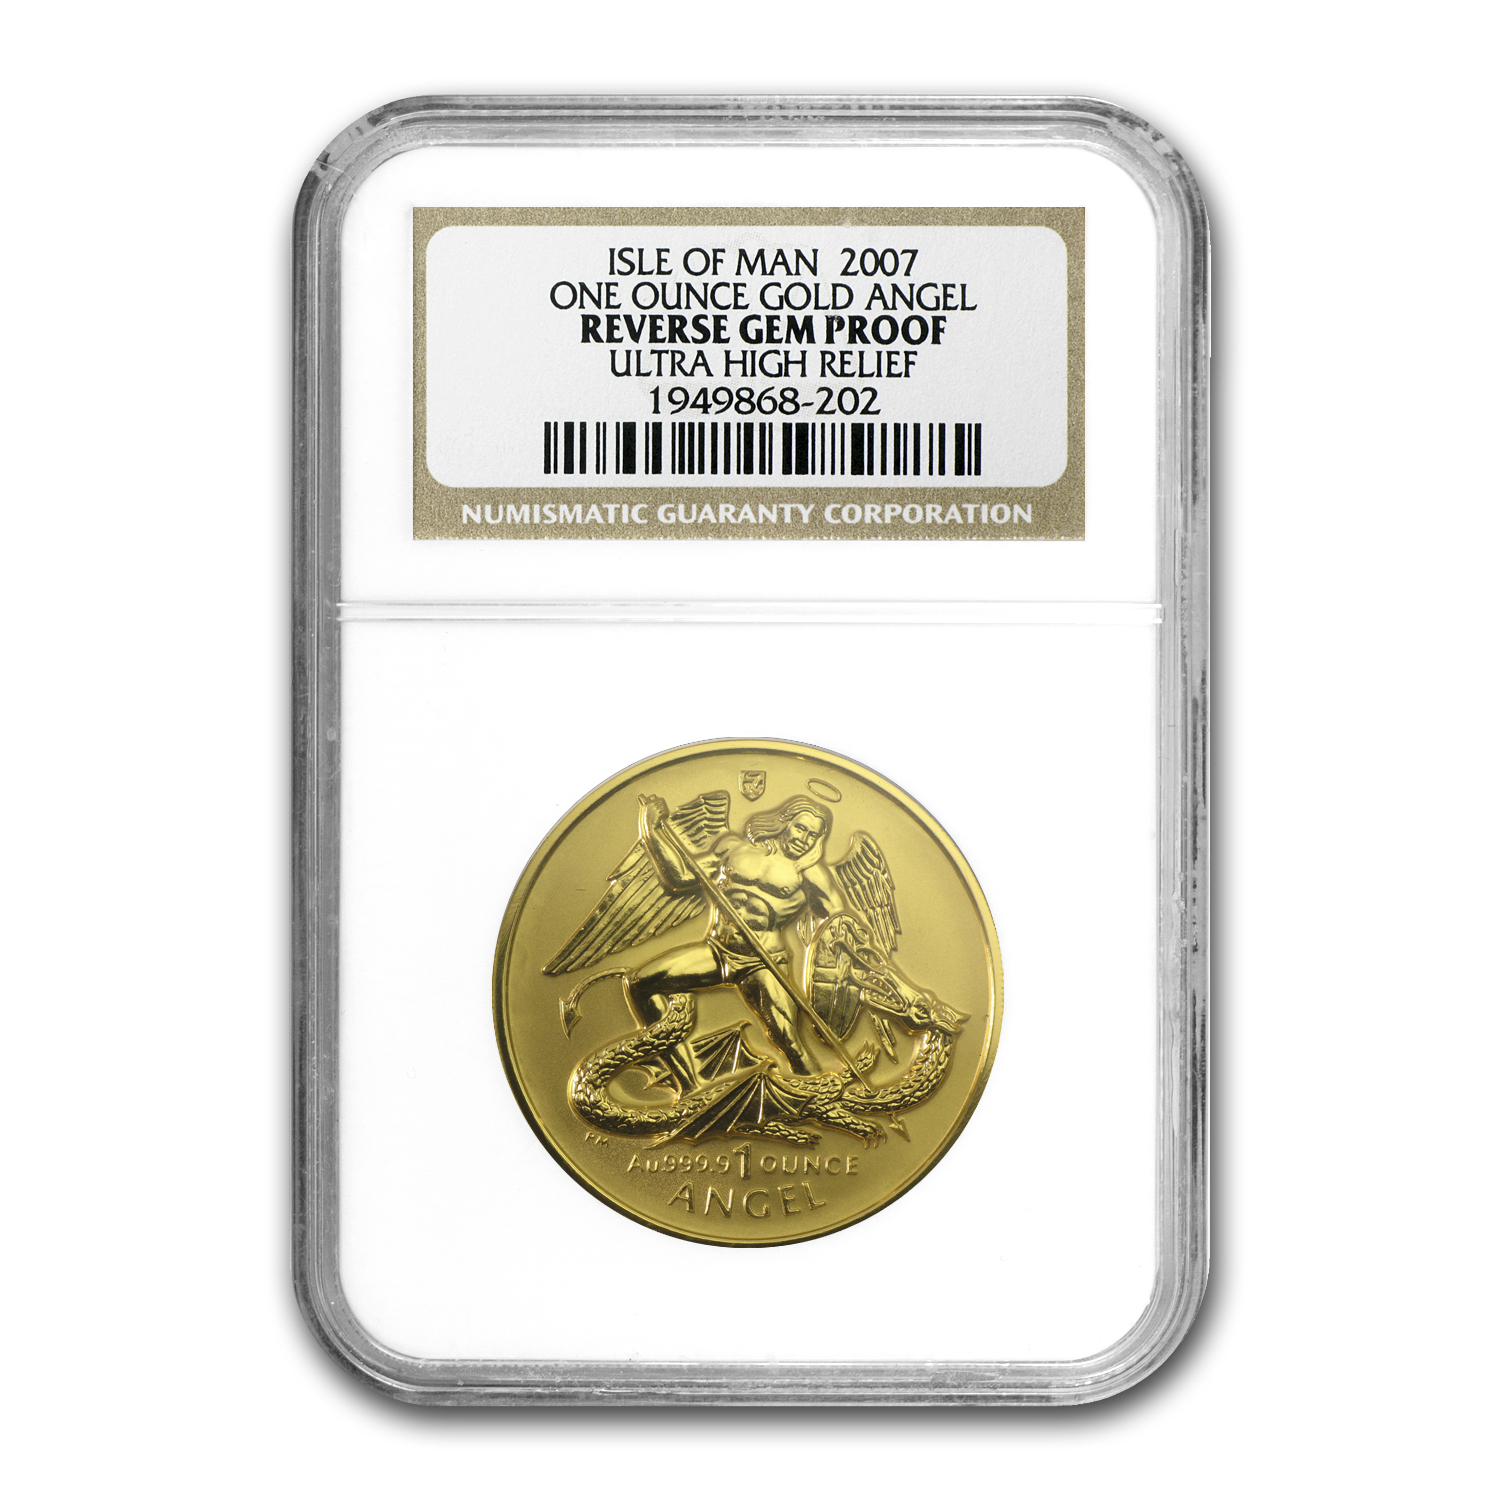 2007 Isle of Man 1 oz Reverse Proof Gold Angel UHR Gem NGC